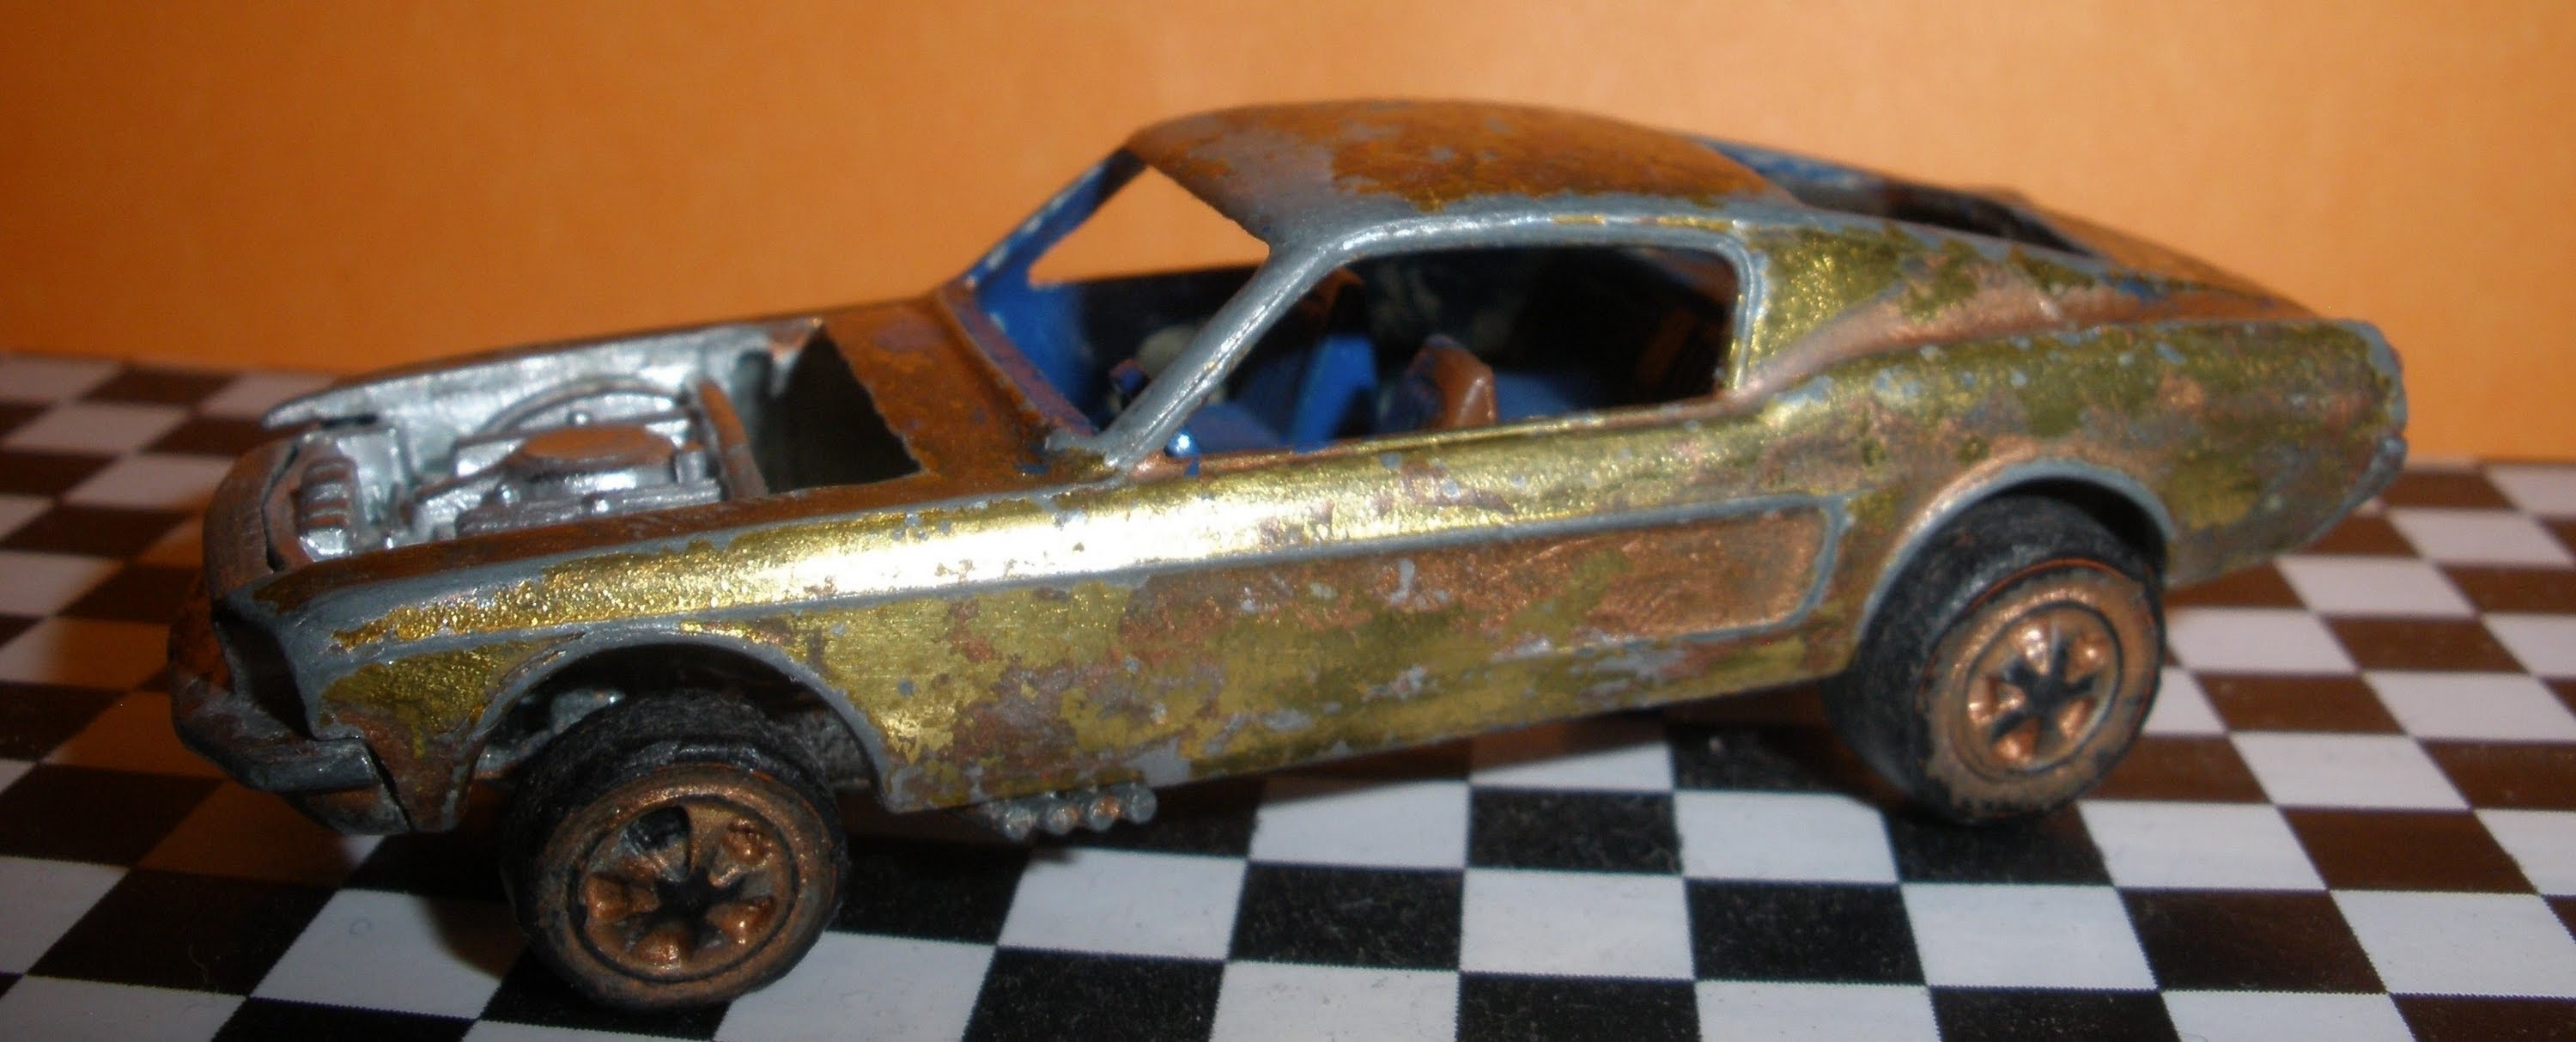 old hot wheels matchbox tootsie toy cars and more found at garage sale youtube